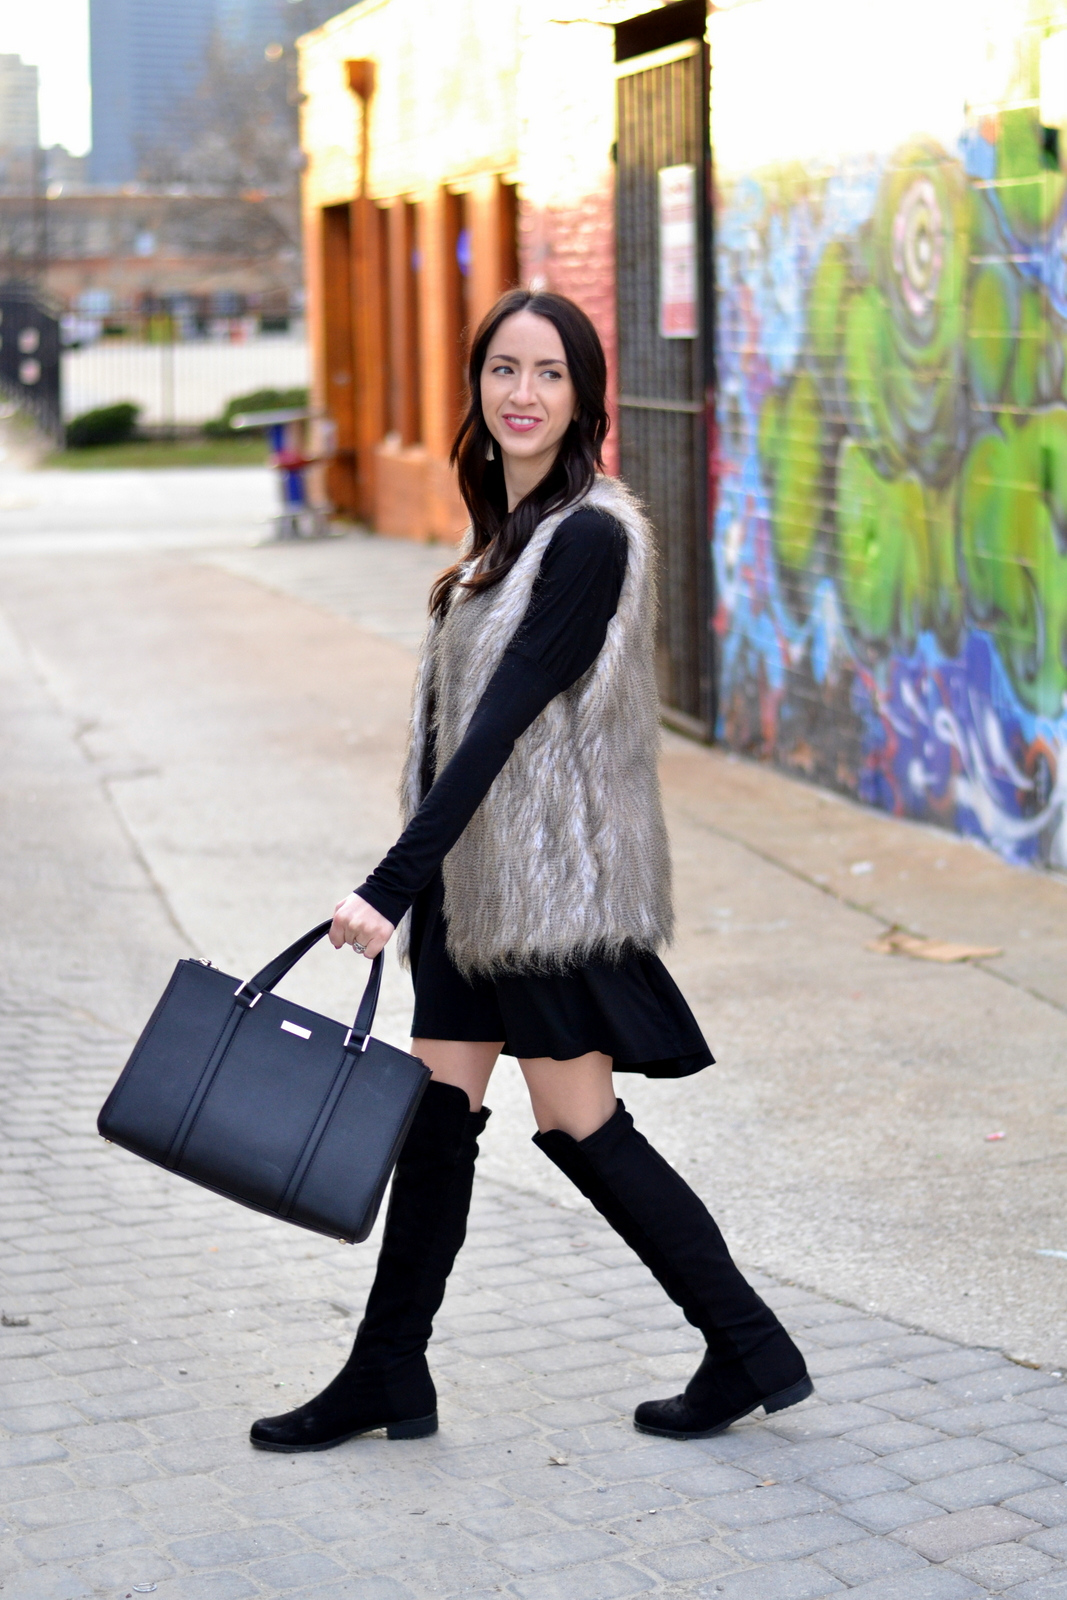 Black piko, fur vest, OTK boots, loose curls